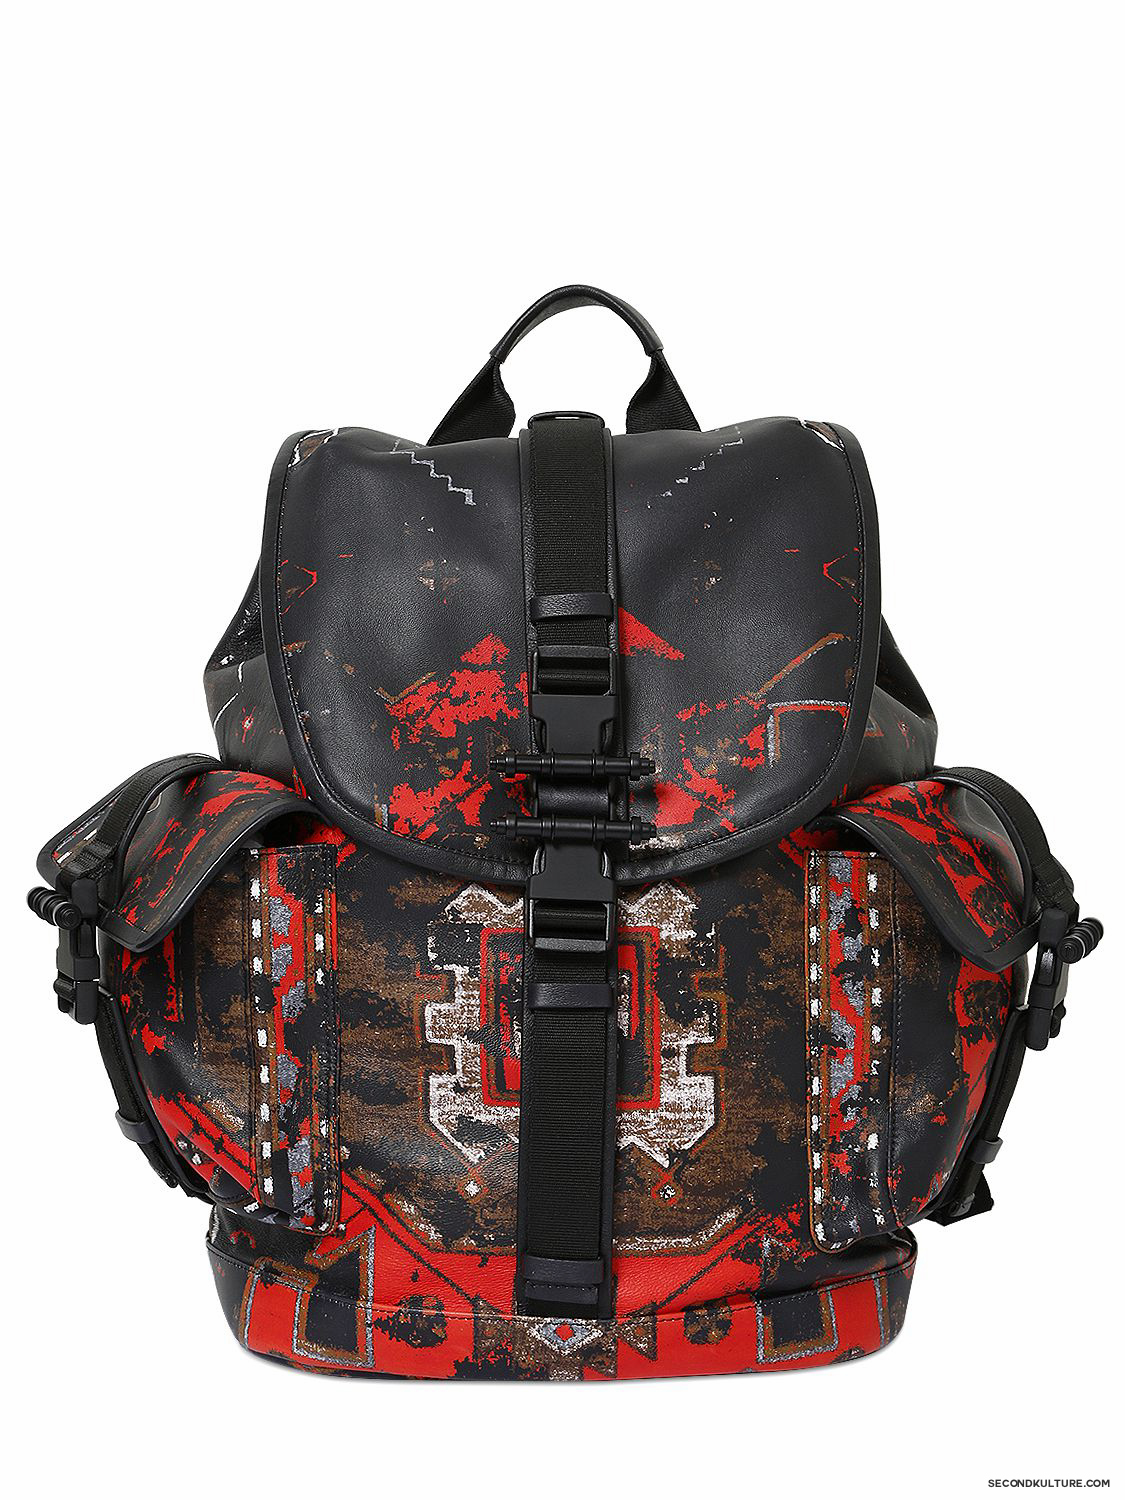 Givenchy-Native-American-Carpet-Degraded-Print-Obsedia-Leather-Backpack-Fall-Winter-2015-1